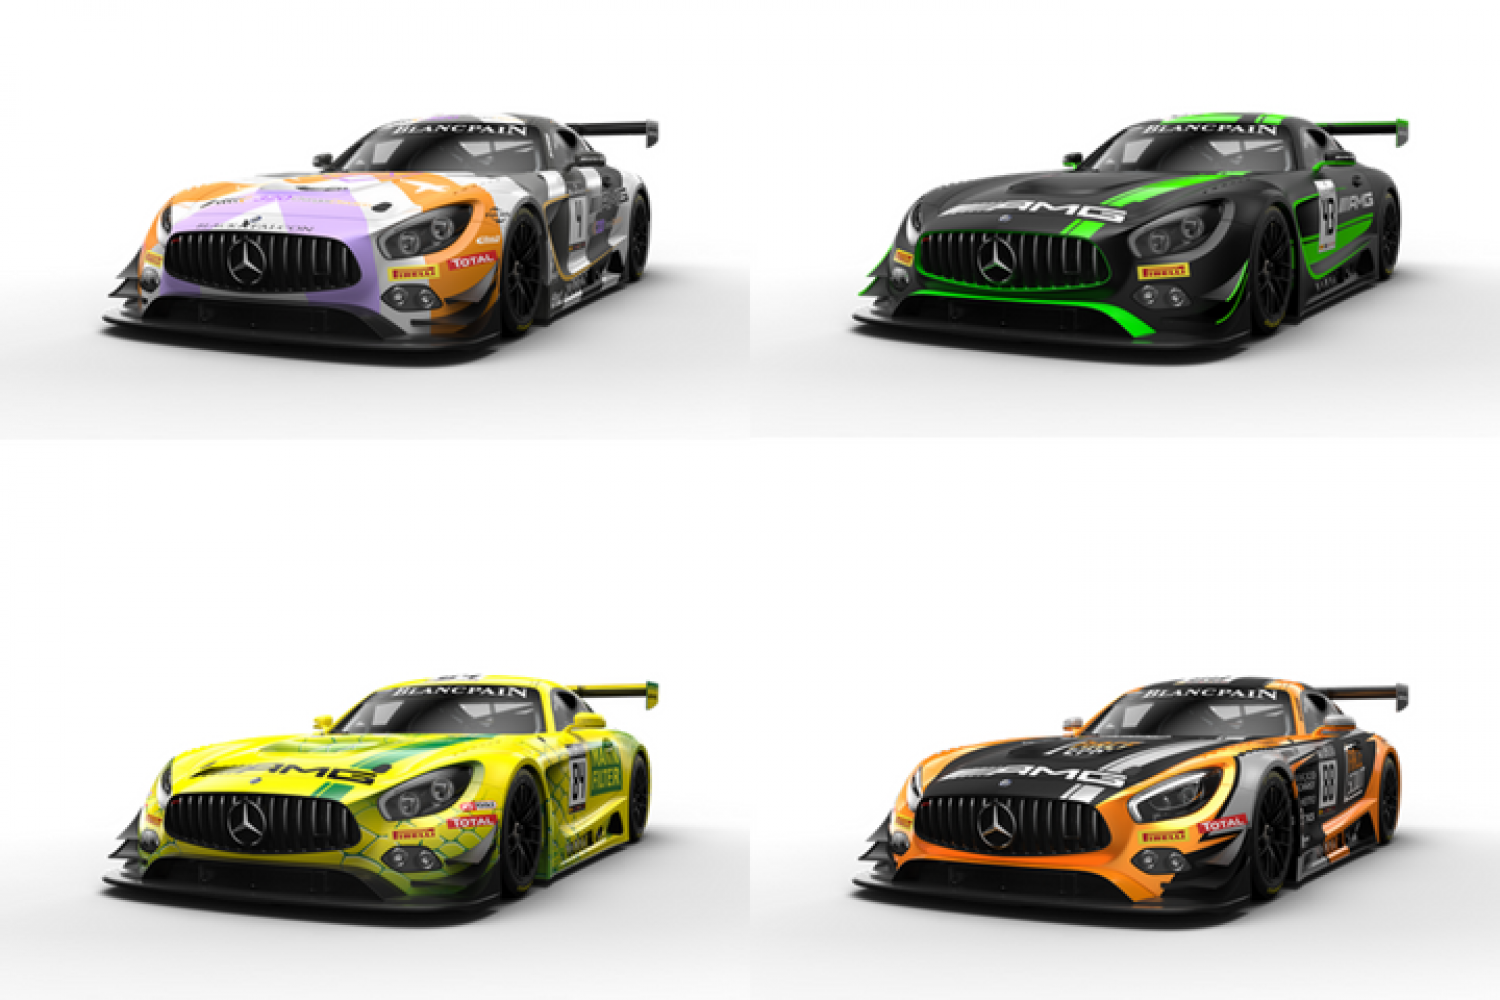 Mercedes-AMG with a record line-up for the Total 24 Hours of Spa